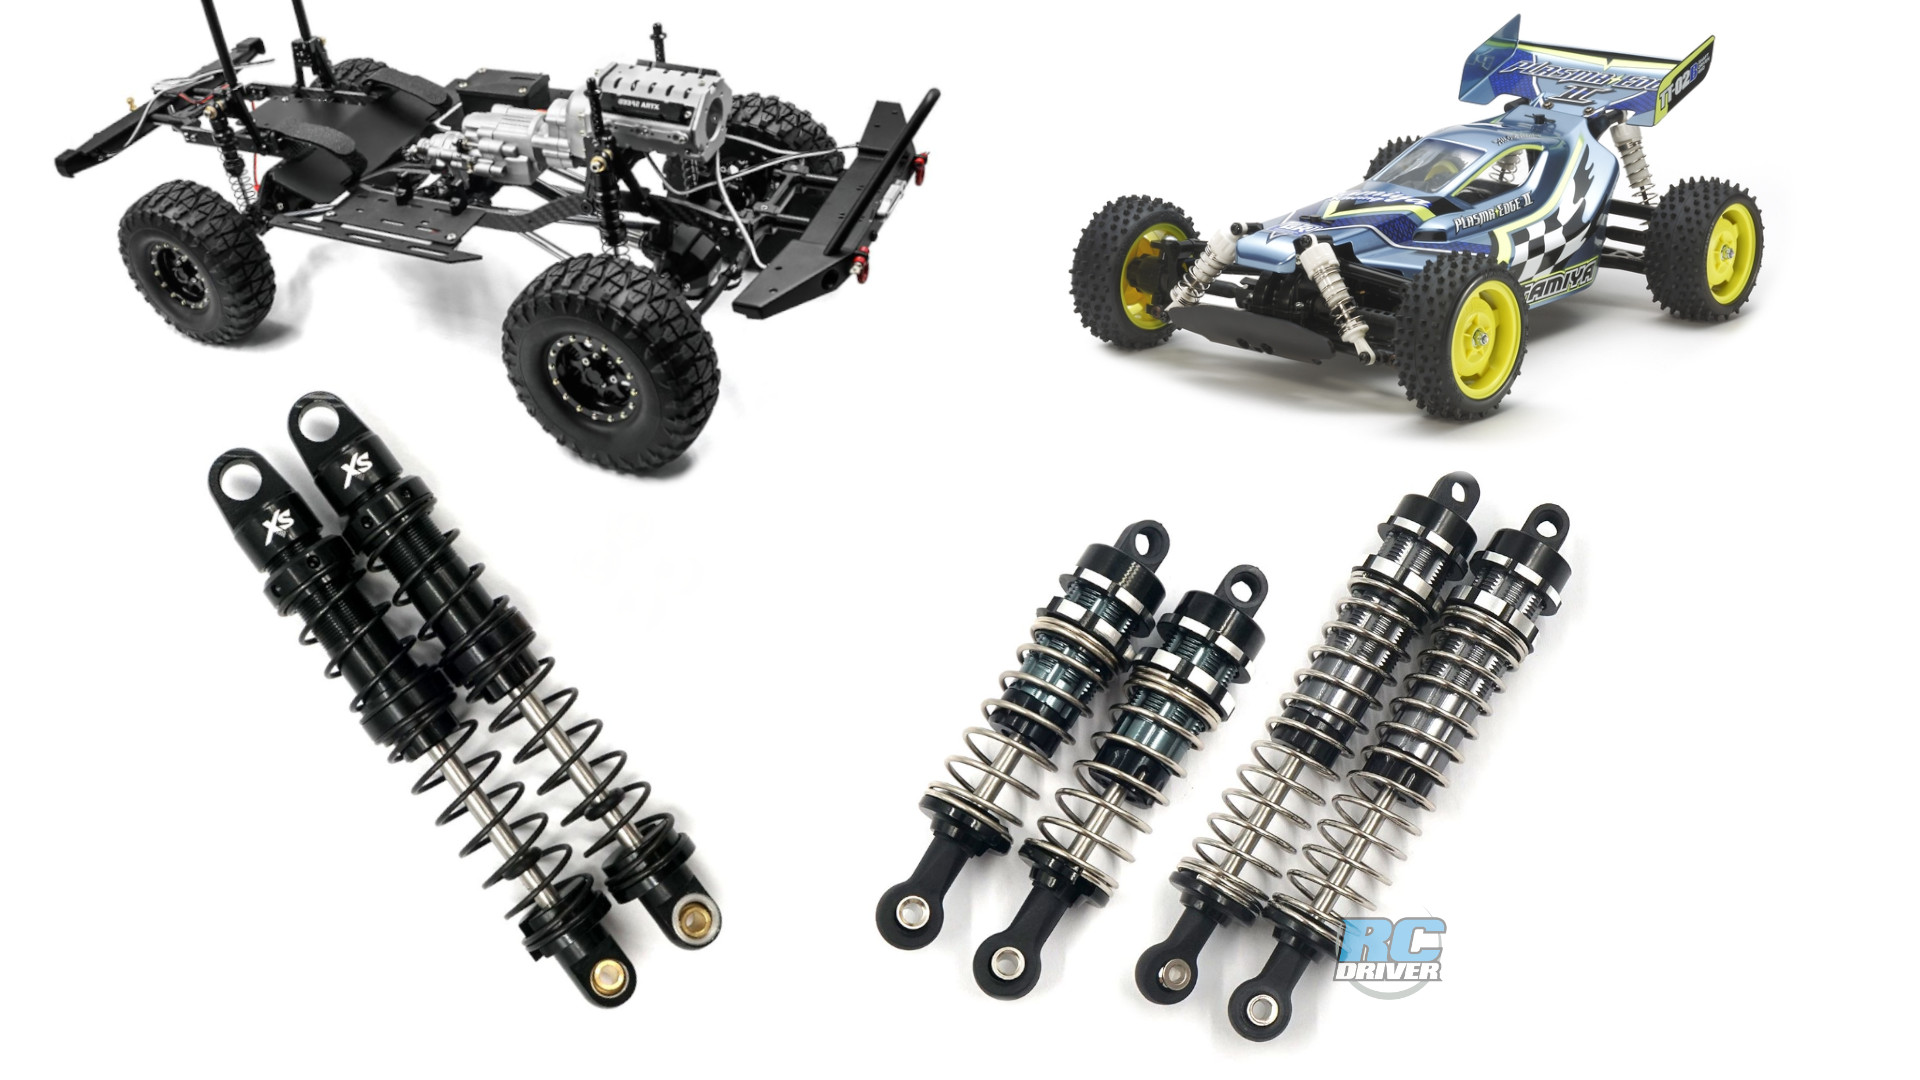 Xtra Speed Aluminum Shocks for crawler and buggies